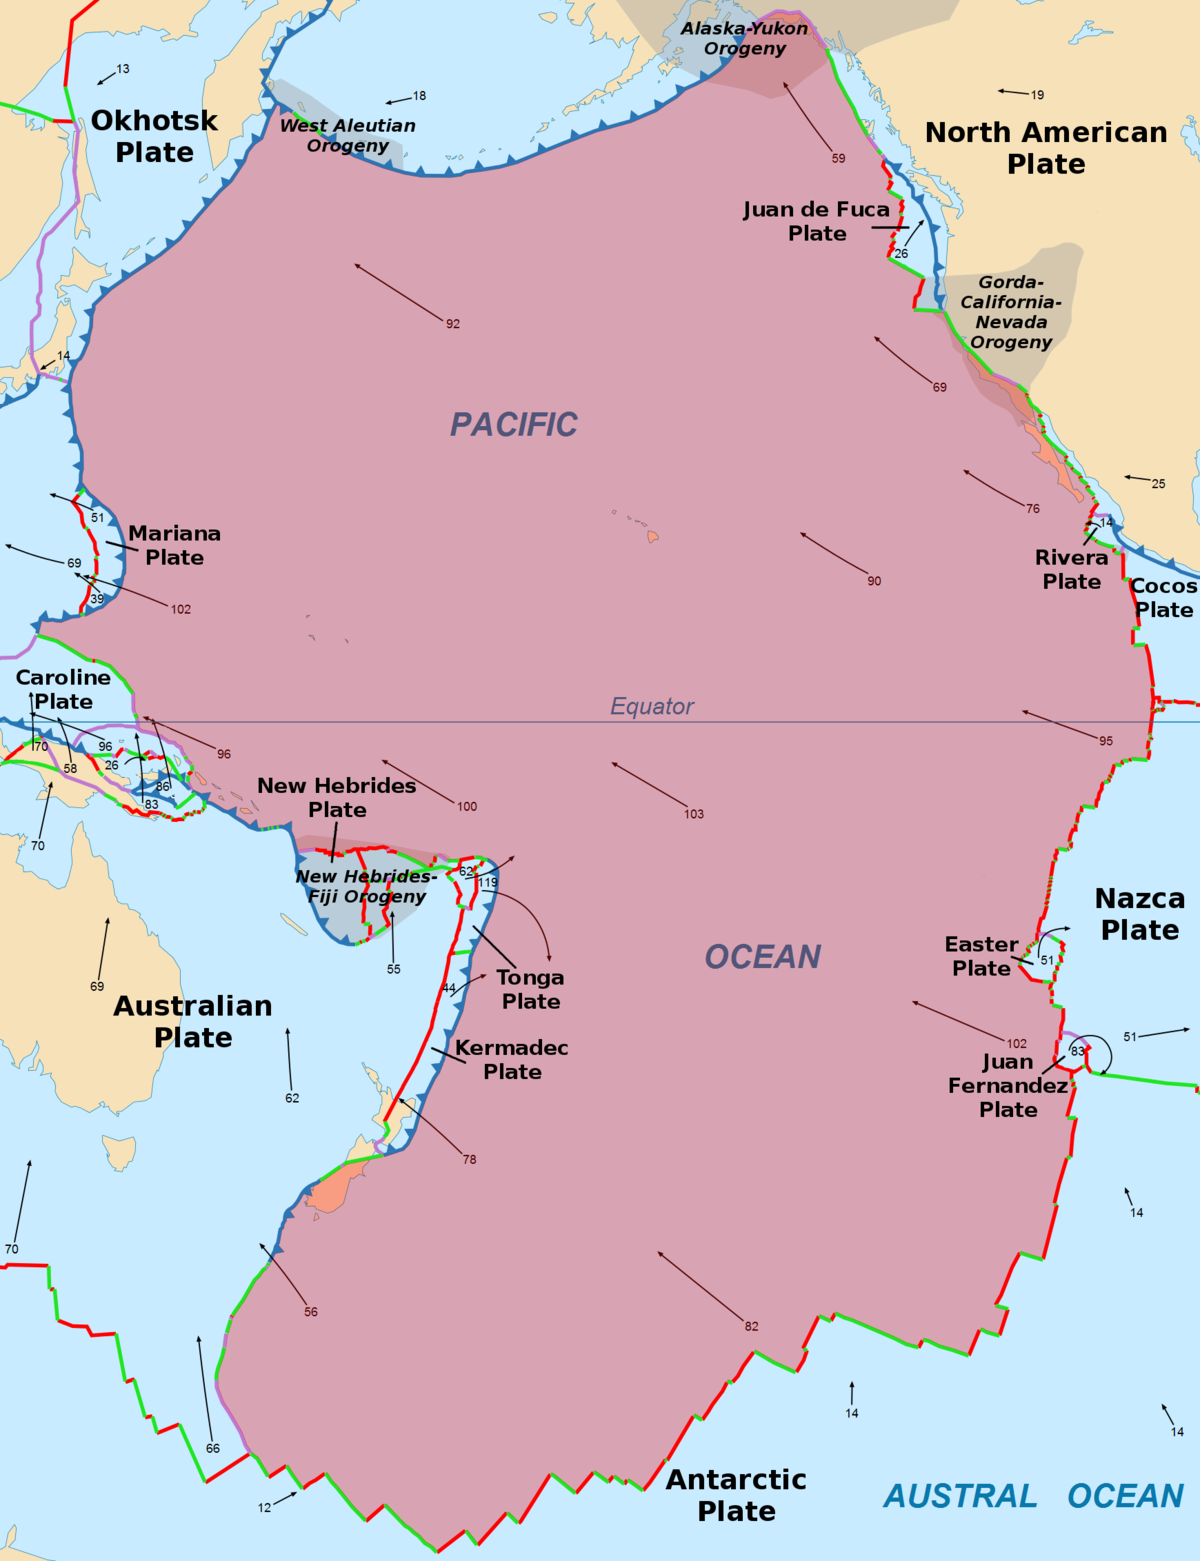 Pacific Plate Wikipedia - Pate boundaries off the coasts us map